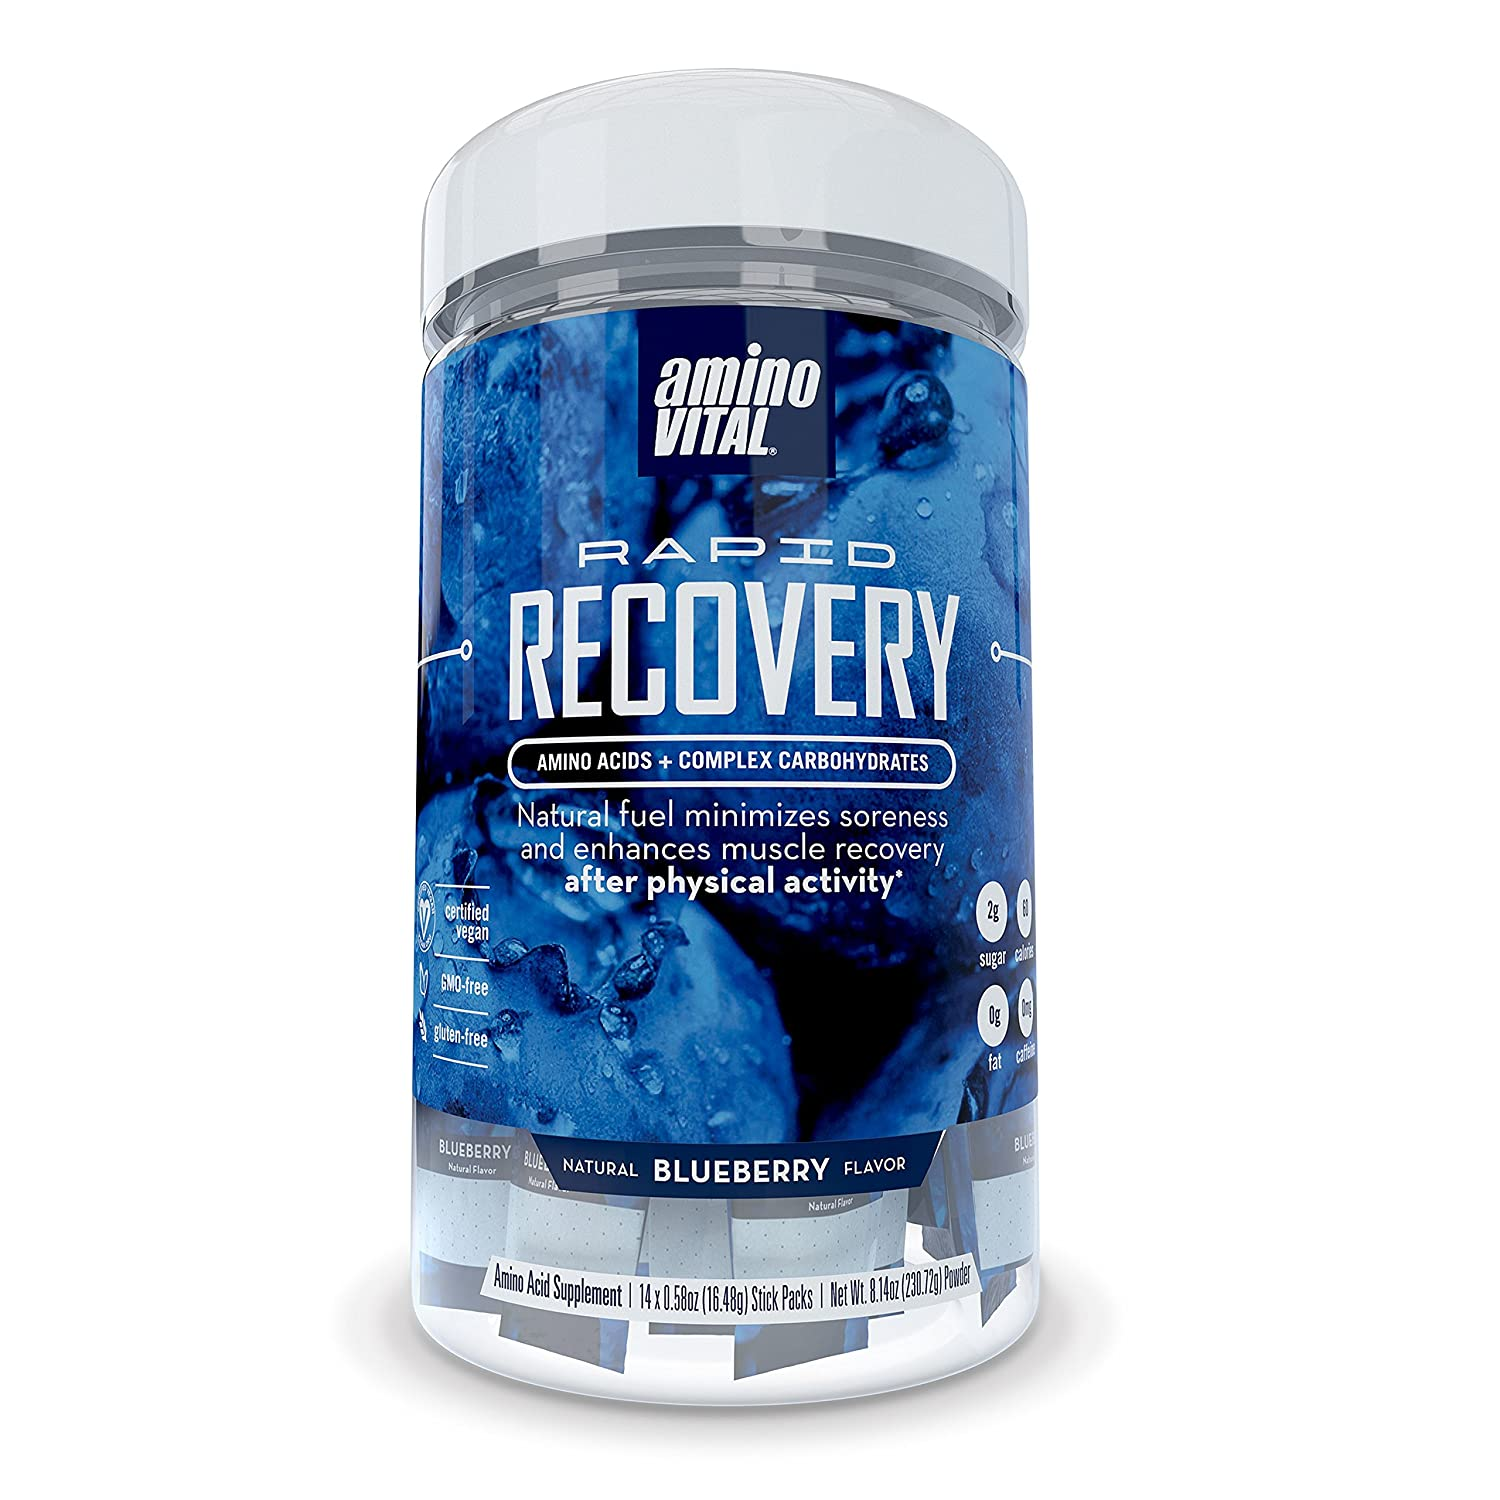 Amino Vital Rapid Recovery - Amino Acids (BCAAs, Glutamine, Arginine) + Carbohydrate Powder Drink Mix, Blueberry, 14 x 16.5g Single-Serve Stick Packs, 8.14oz Canister